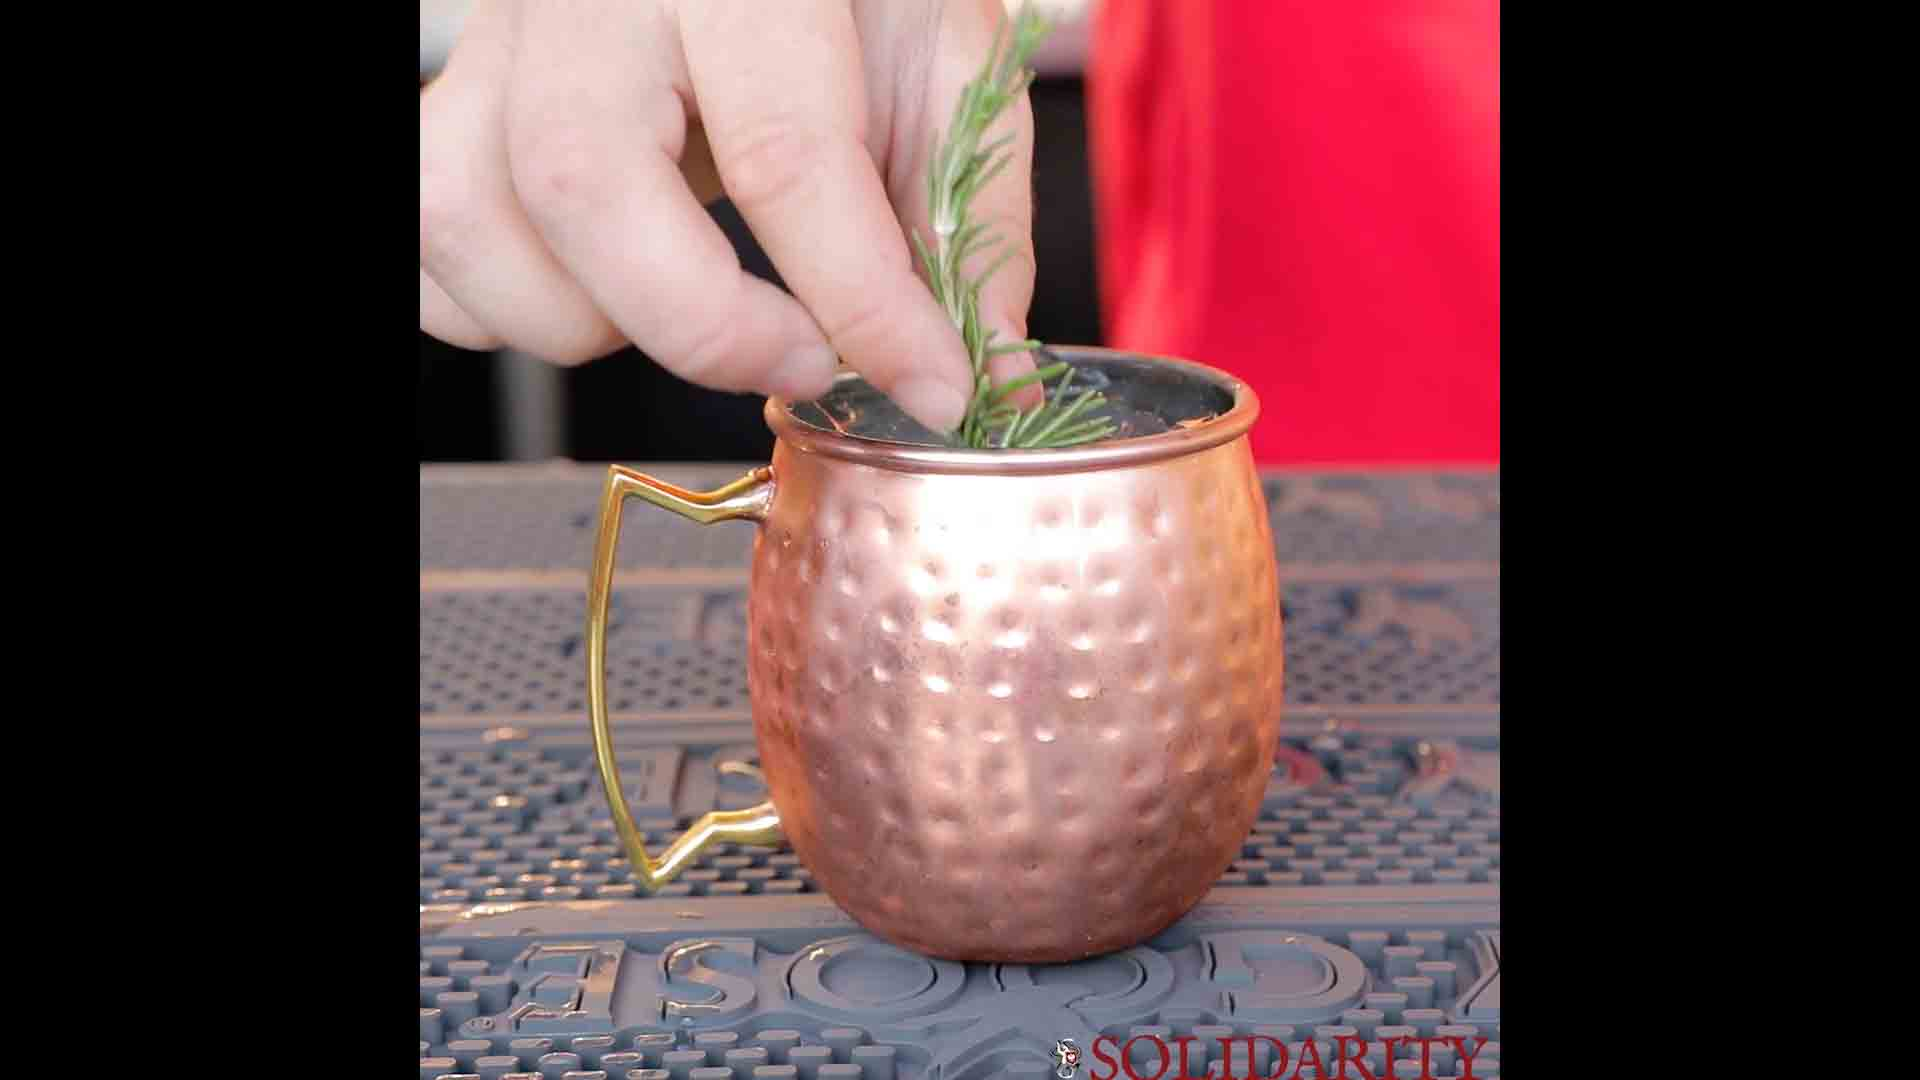 Solidarity – Moscow Mule Square IG